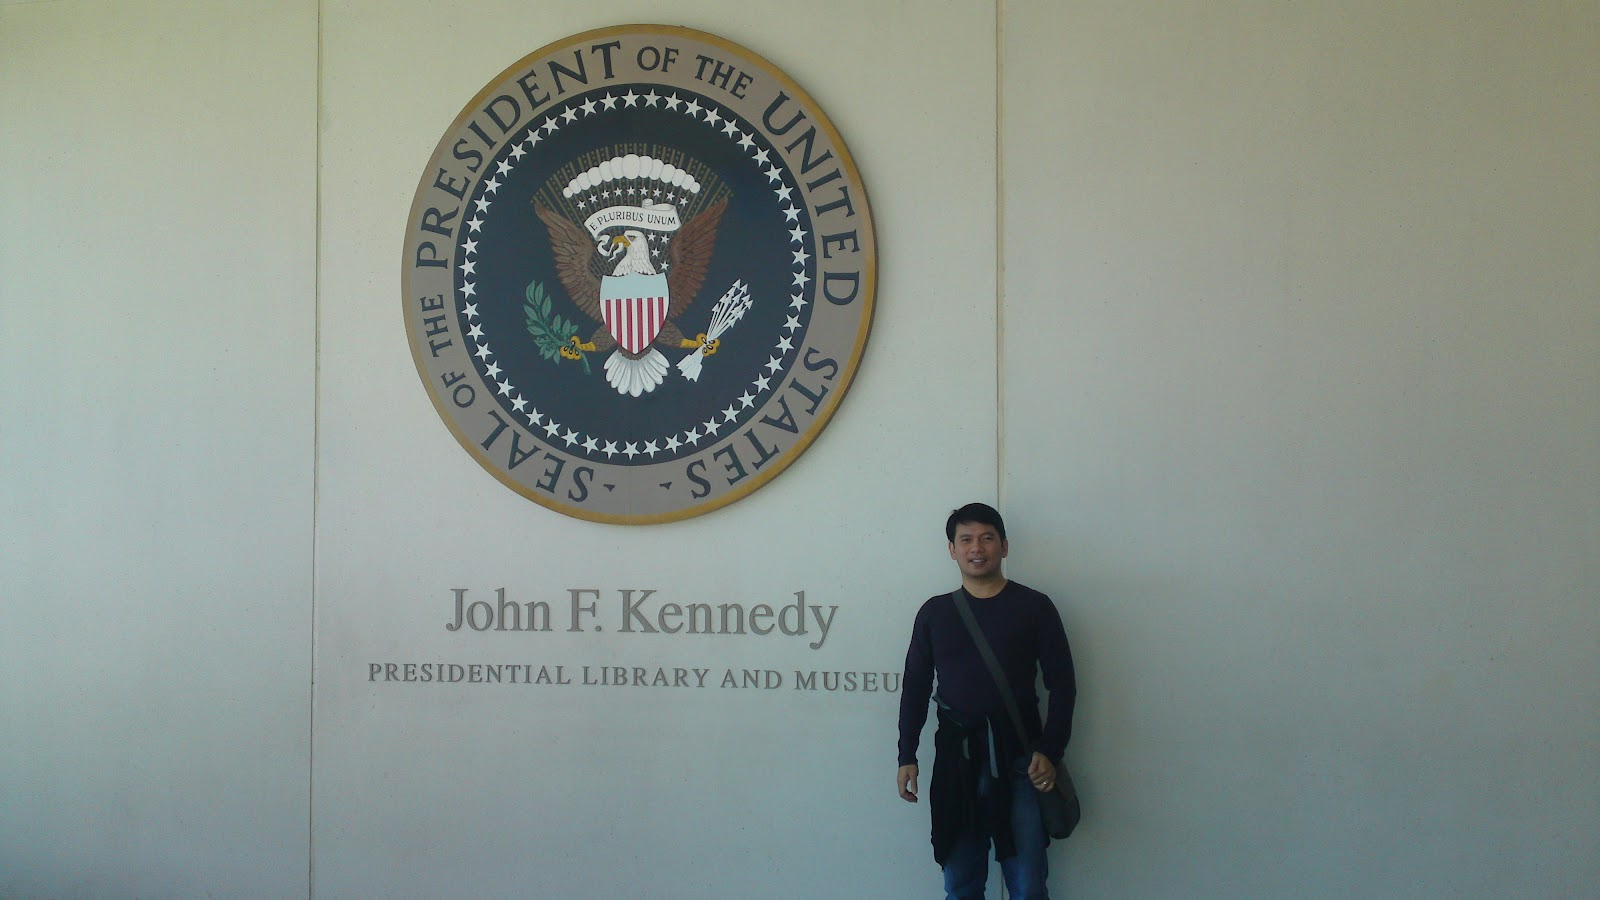 The John F  Kennedy Presidential Library and Museum. Harvard Business School Chronicles  Advanced Management Program 182